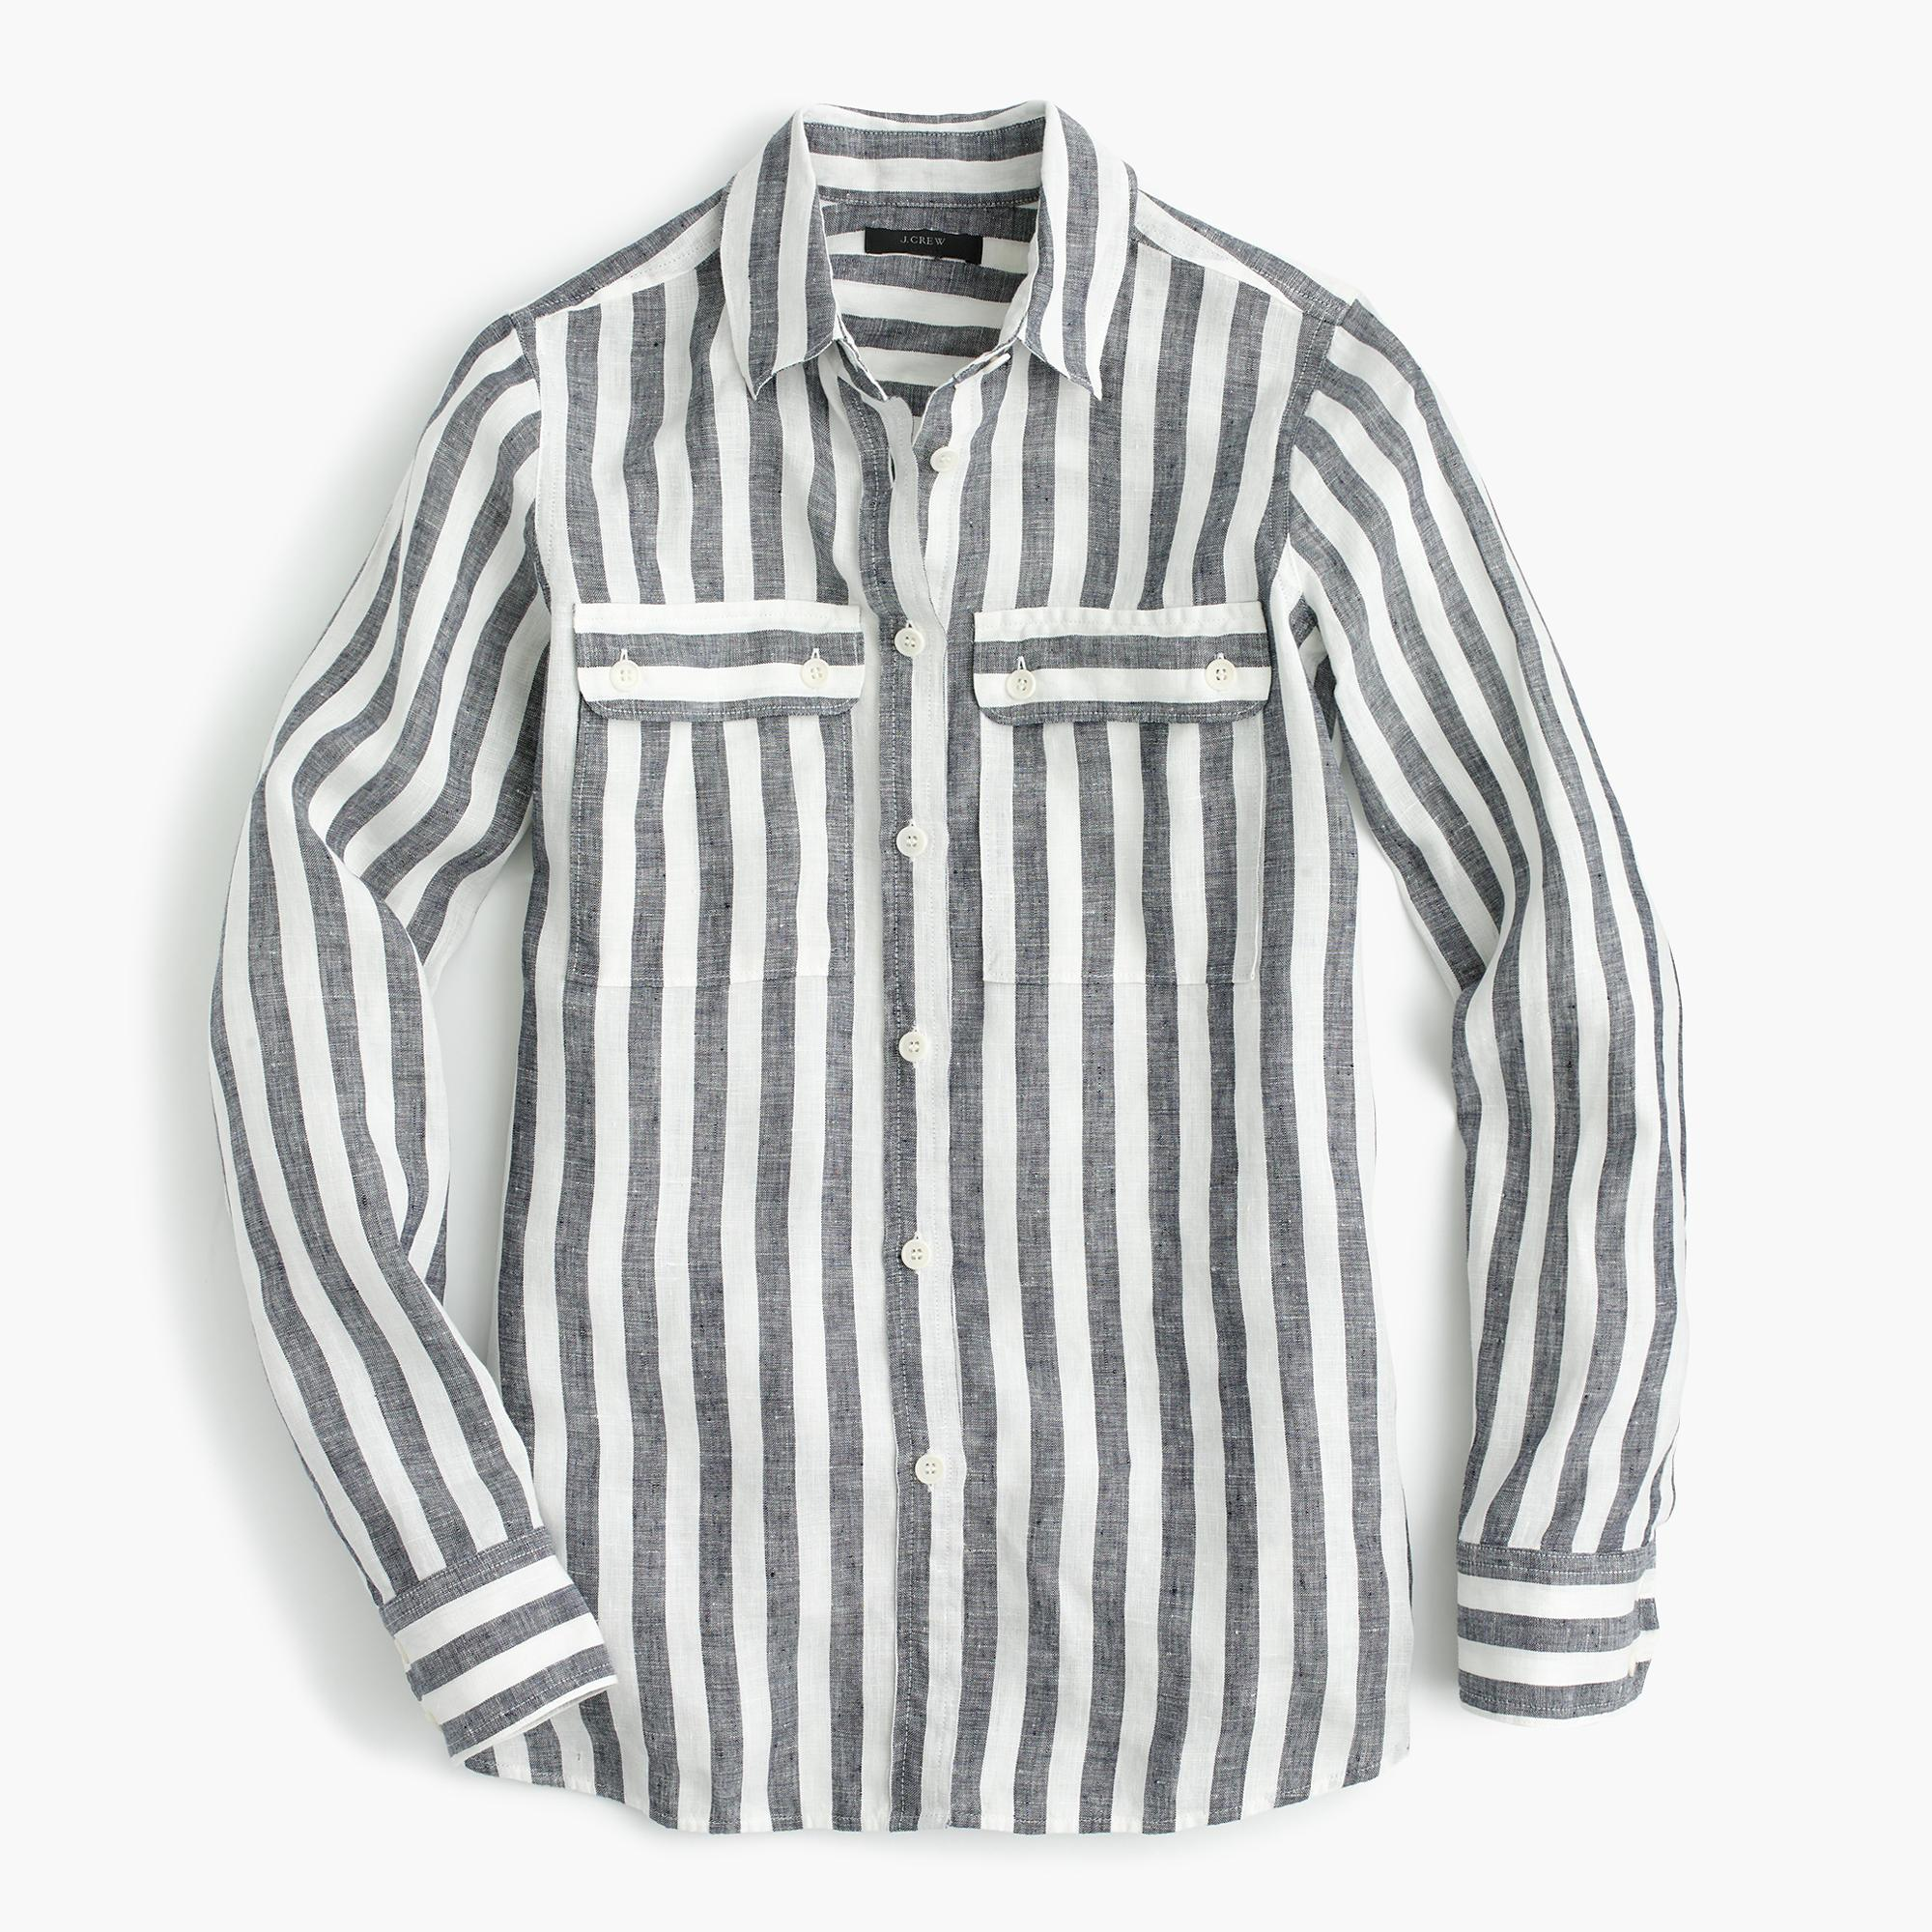 Lyst j crew button up shirt in striped linen in blue for Linen button up shirt womens